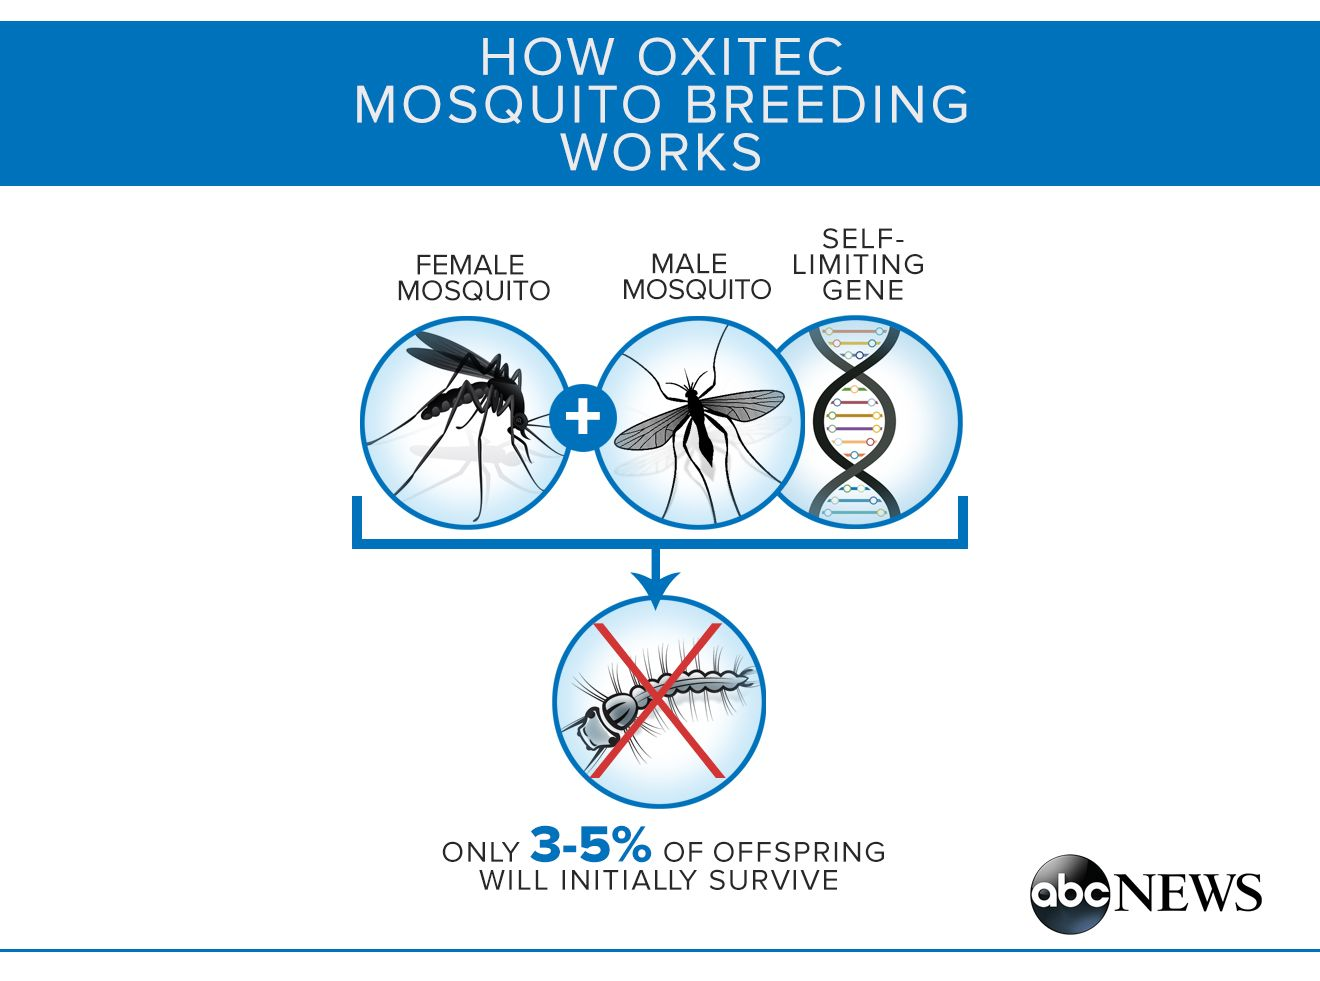 Fighting Zika in the US: The Battle Over GMO Mosquitoes. How one island in the the Florida Keys could change the way we fight mosquito-borne diseases.  The decision whether to release genetically engineered mosquitoes could change history. People speaking out in opposition have stalled the release. There have been no environmental studies and we have no idea of the long term ramifications. Seems like a total disregard for safety in  the name of greed. How did they get this far? KEEP…